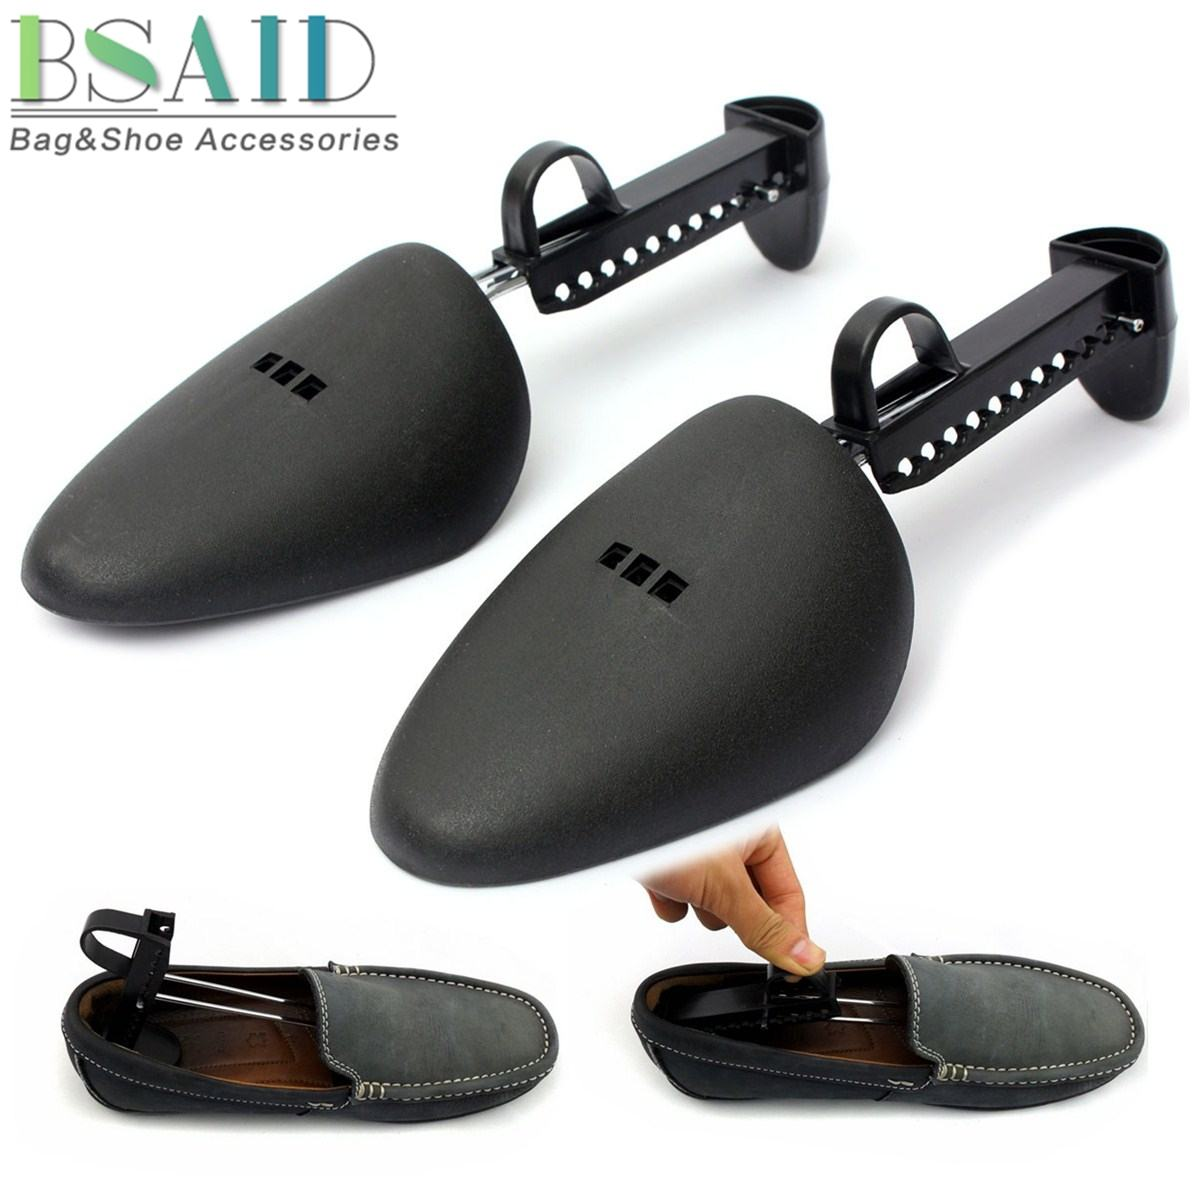 BSAID 1 Pair Shoe Stretcher Plastic Shoes Tree Shaper Rack Professional Adjustable Flats Boots Expander Trees Men